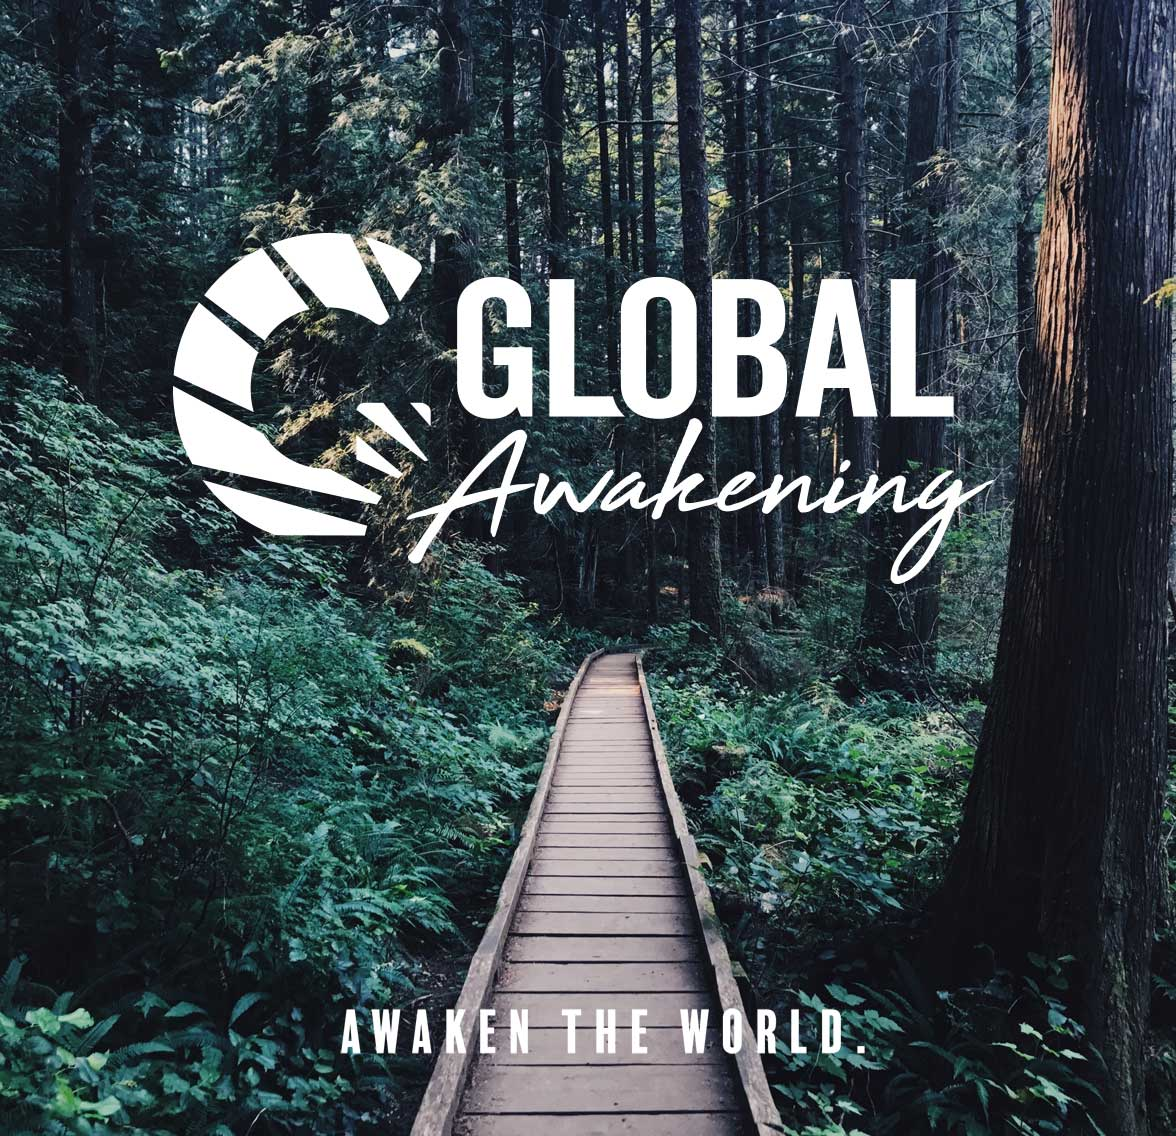 second poster of new Global Awakening logo